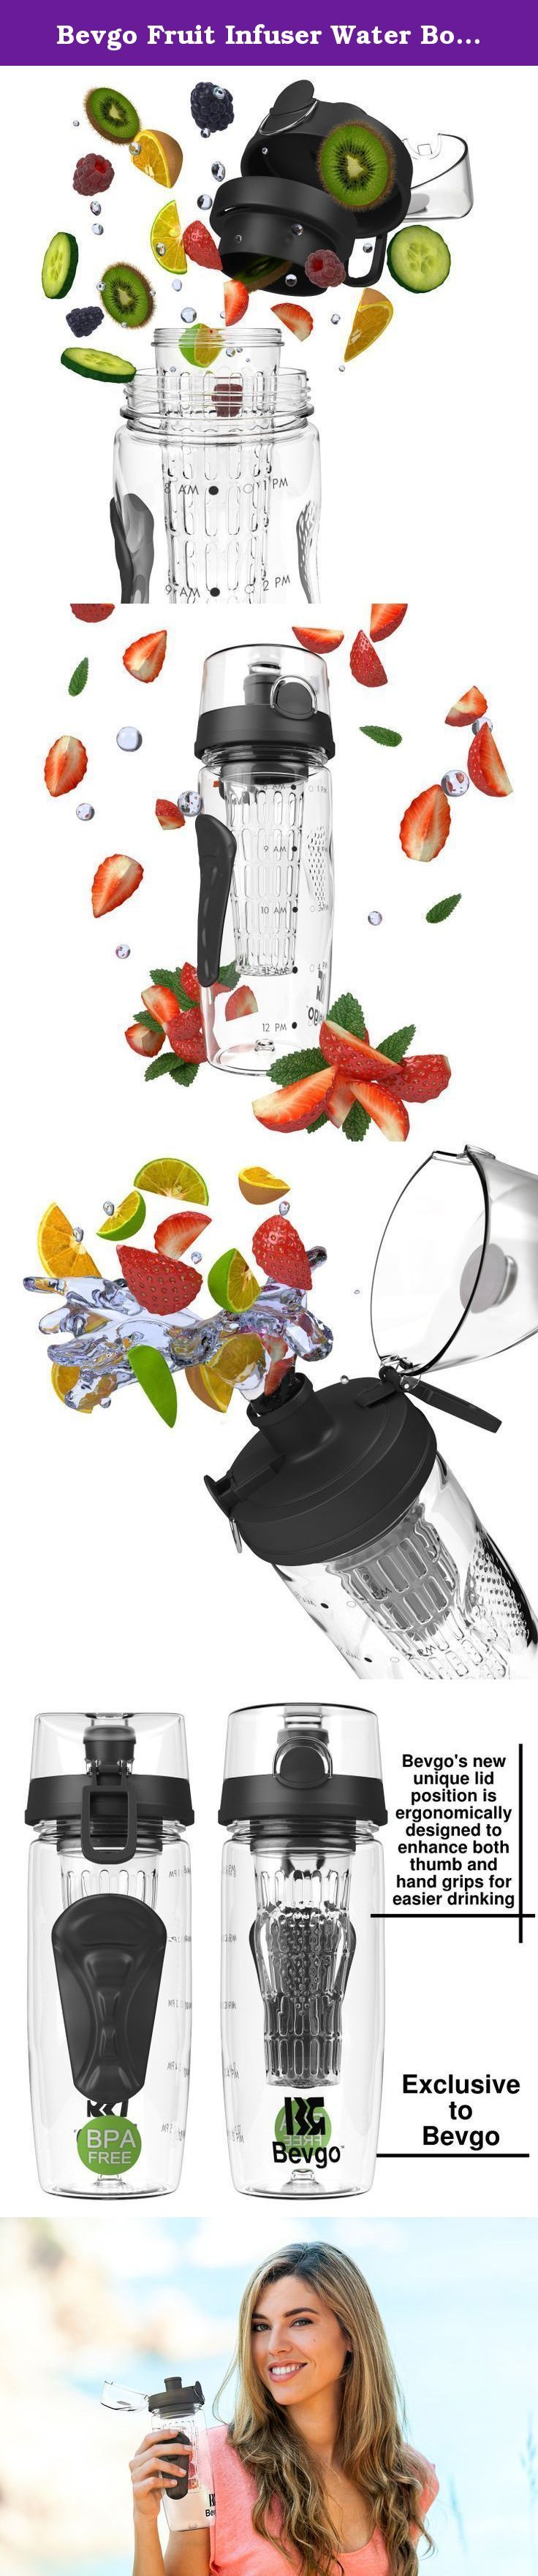 """Bevgo Fruit Infuser Water Bottle - Large 32oz - Intergrated Timeline on all Bottles - Save Your Money and Hydrate the Healthy Way - Multiple Colors with Recipe Book Gift Included. HOW OFTEN HAVE YOU SAID """"I DON'T DRINK ENOUGH WATER, BUT I WANT TO""""? What better way to refuel and stay hydrated than with fresh fruit. The Bevgo Fruit Infuser Water Bottle is the original and best made infuser on the market. It's perfect for the office, gym, yoga, hiking, camping, travelling and even the kids…"""